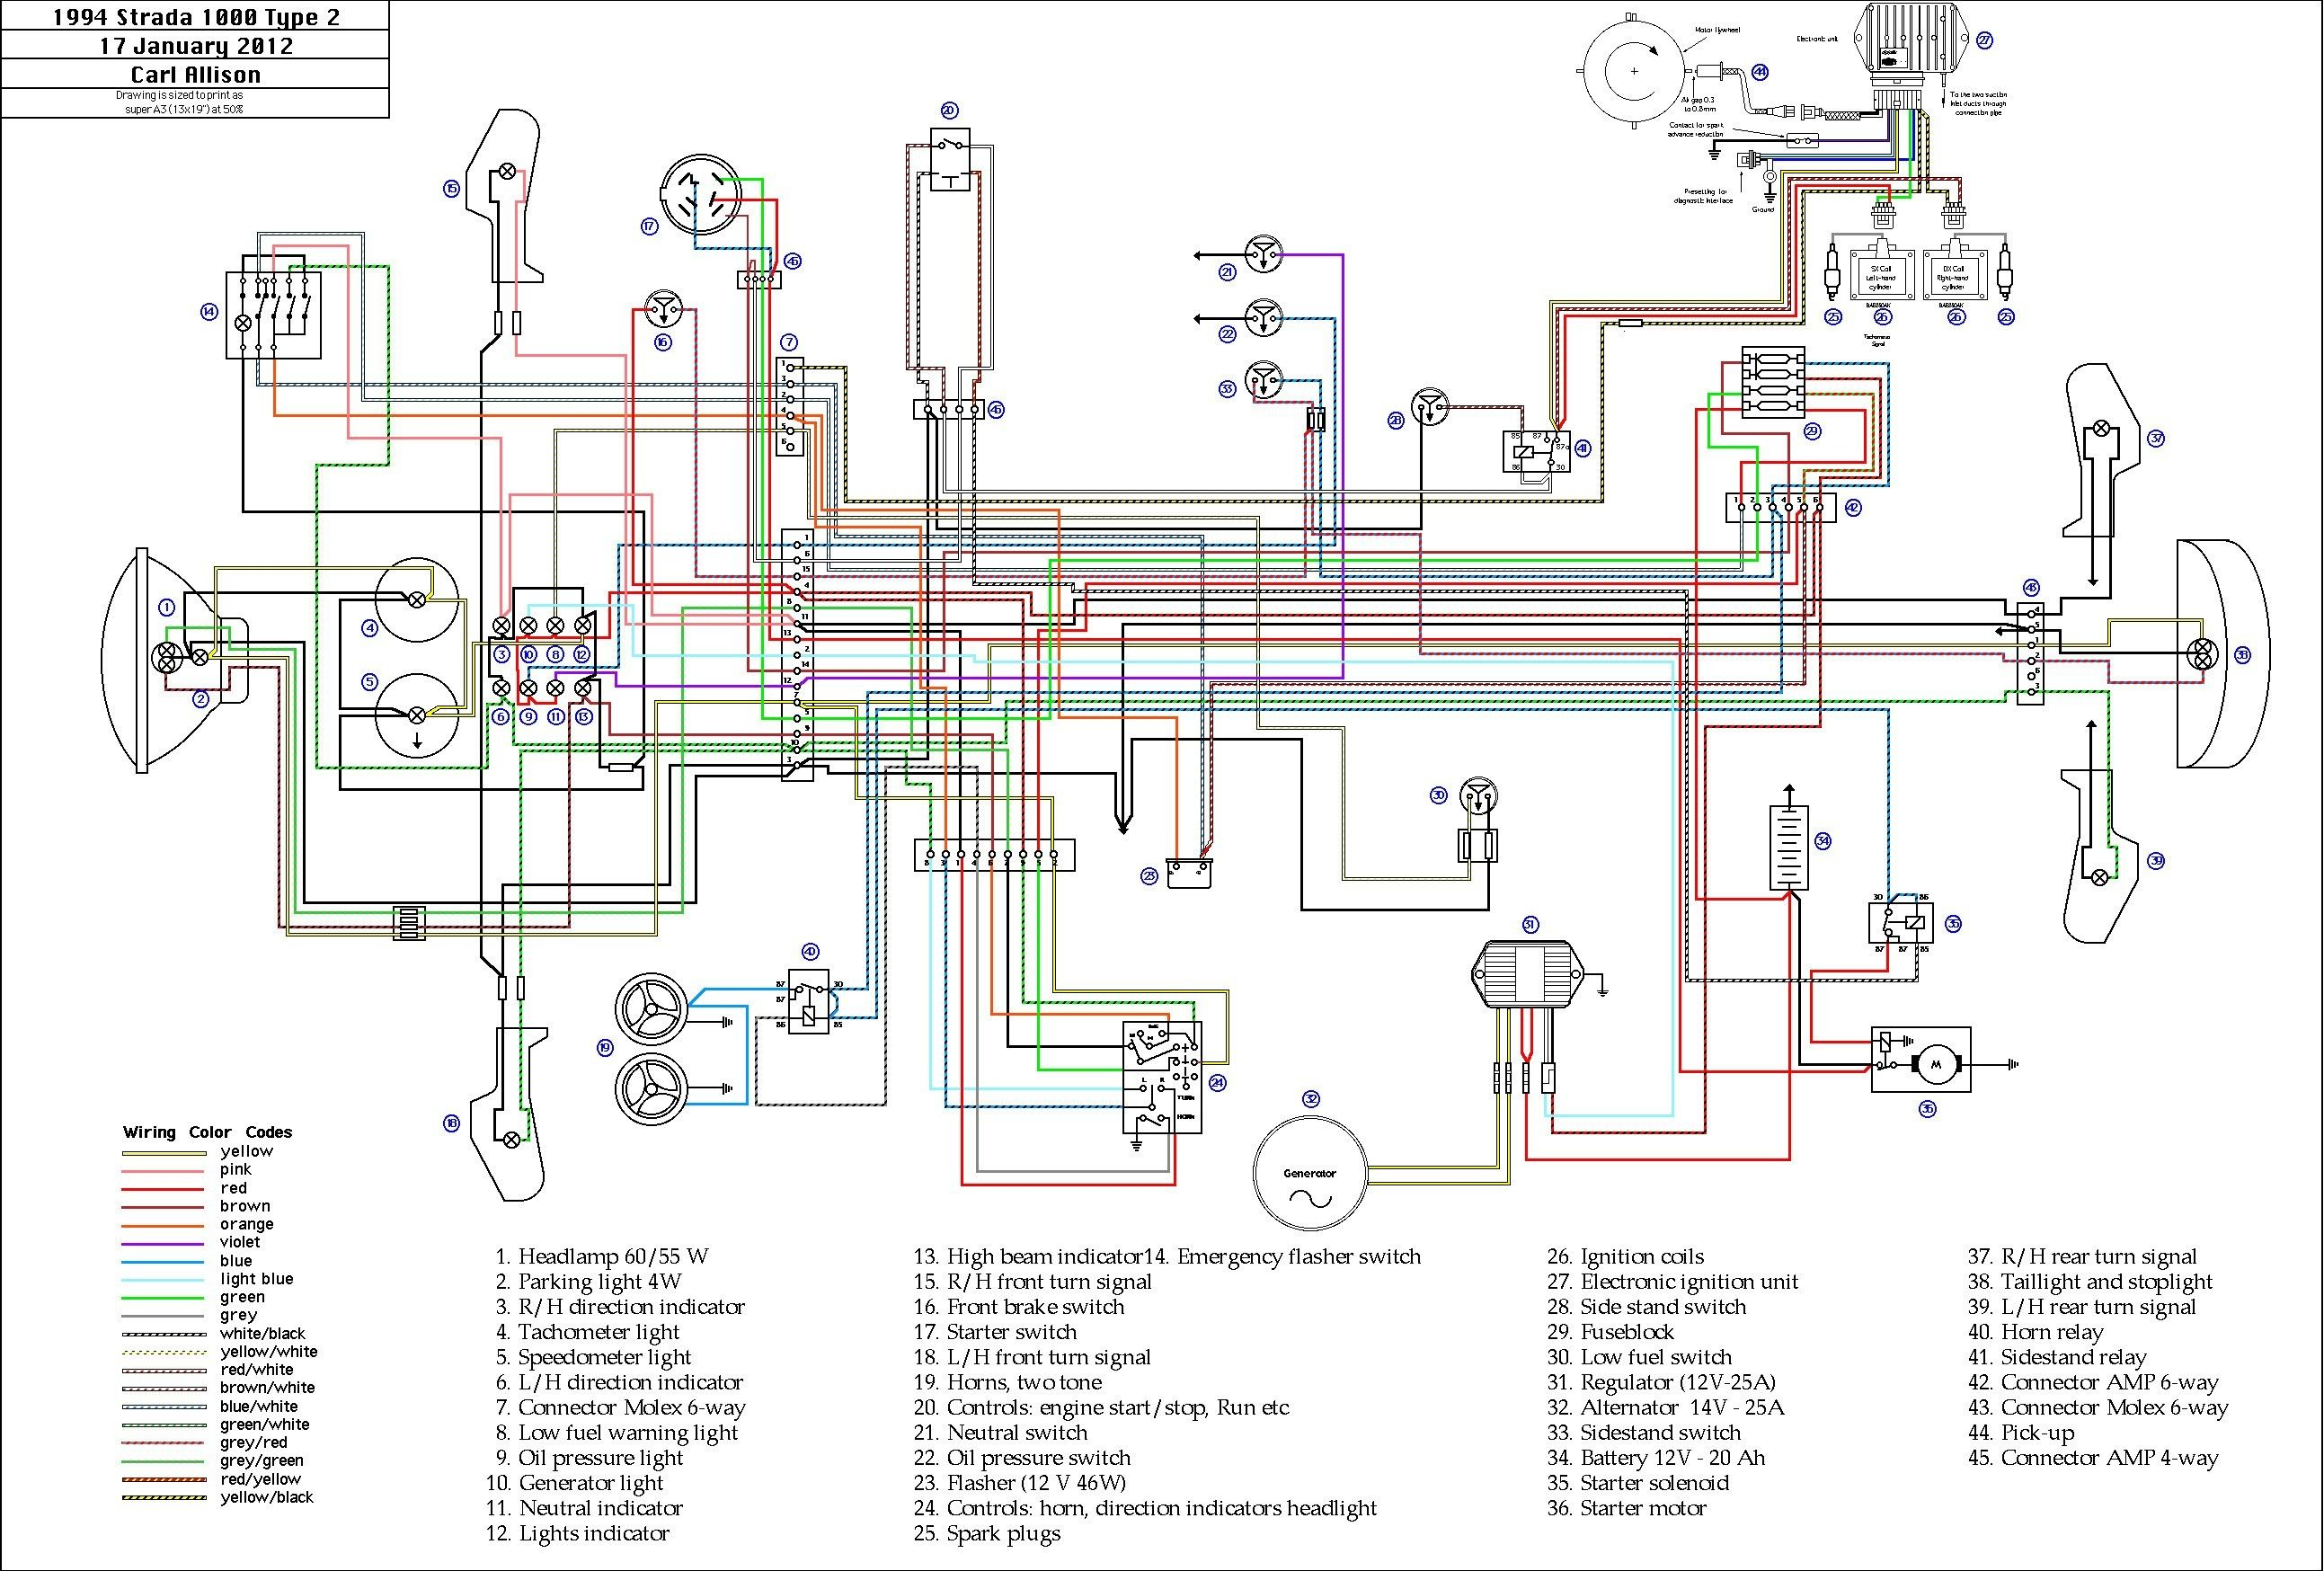 Pin Trailer Plug Wiring Diagram Also Dodge Ram 1500 Wiring Diagram